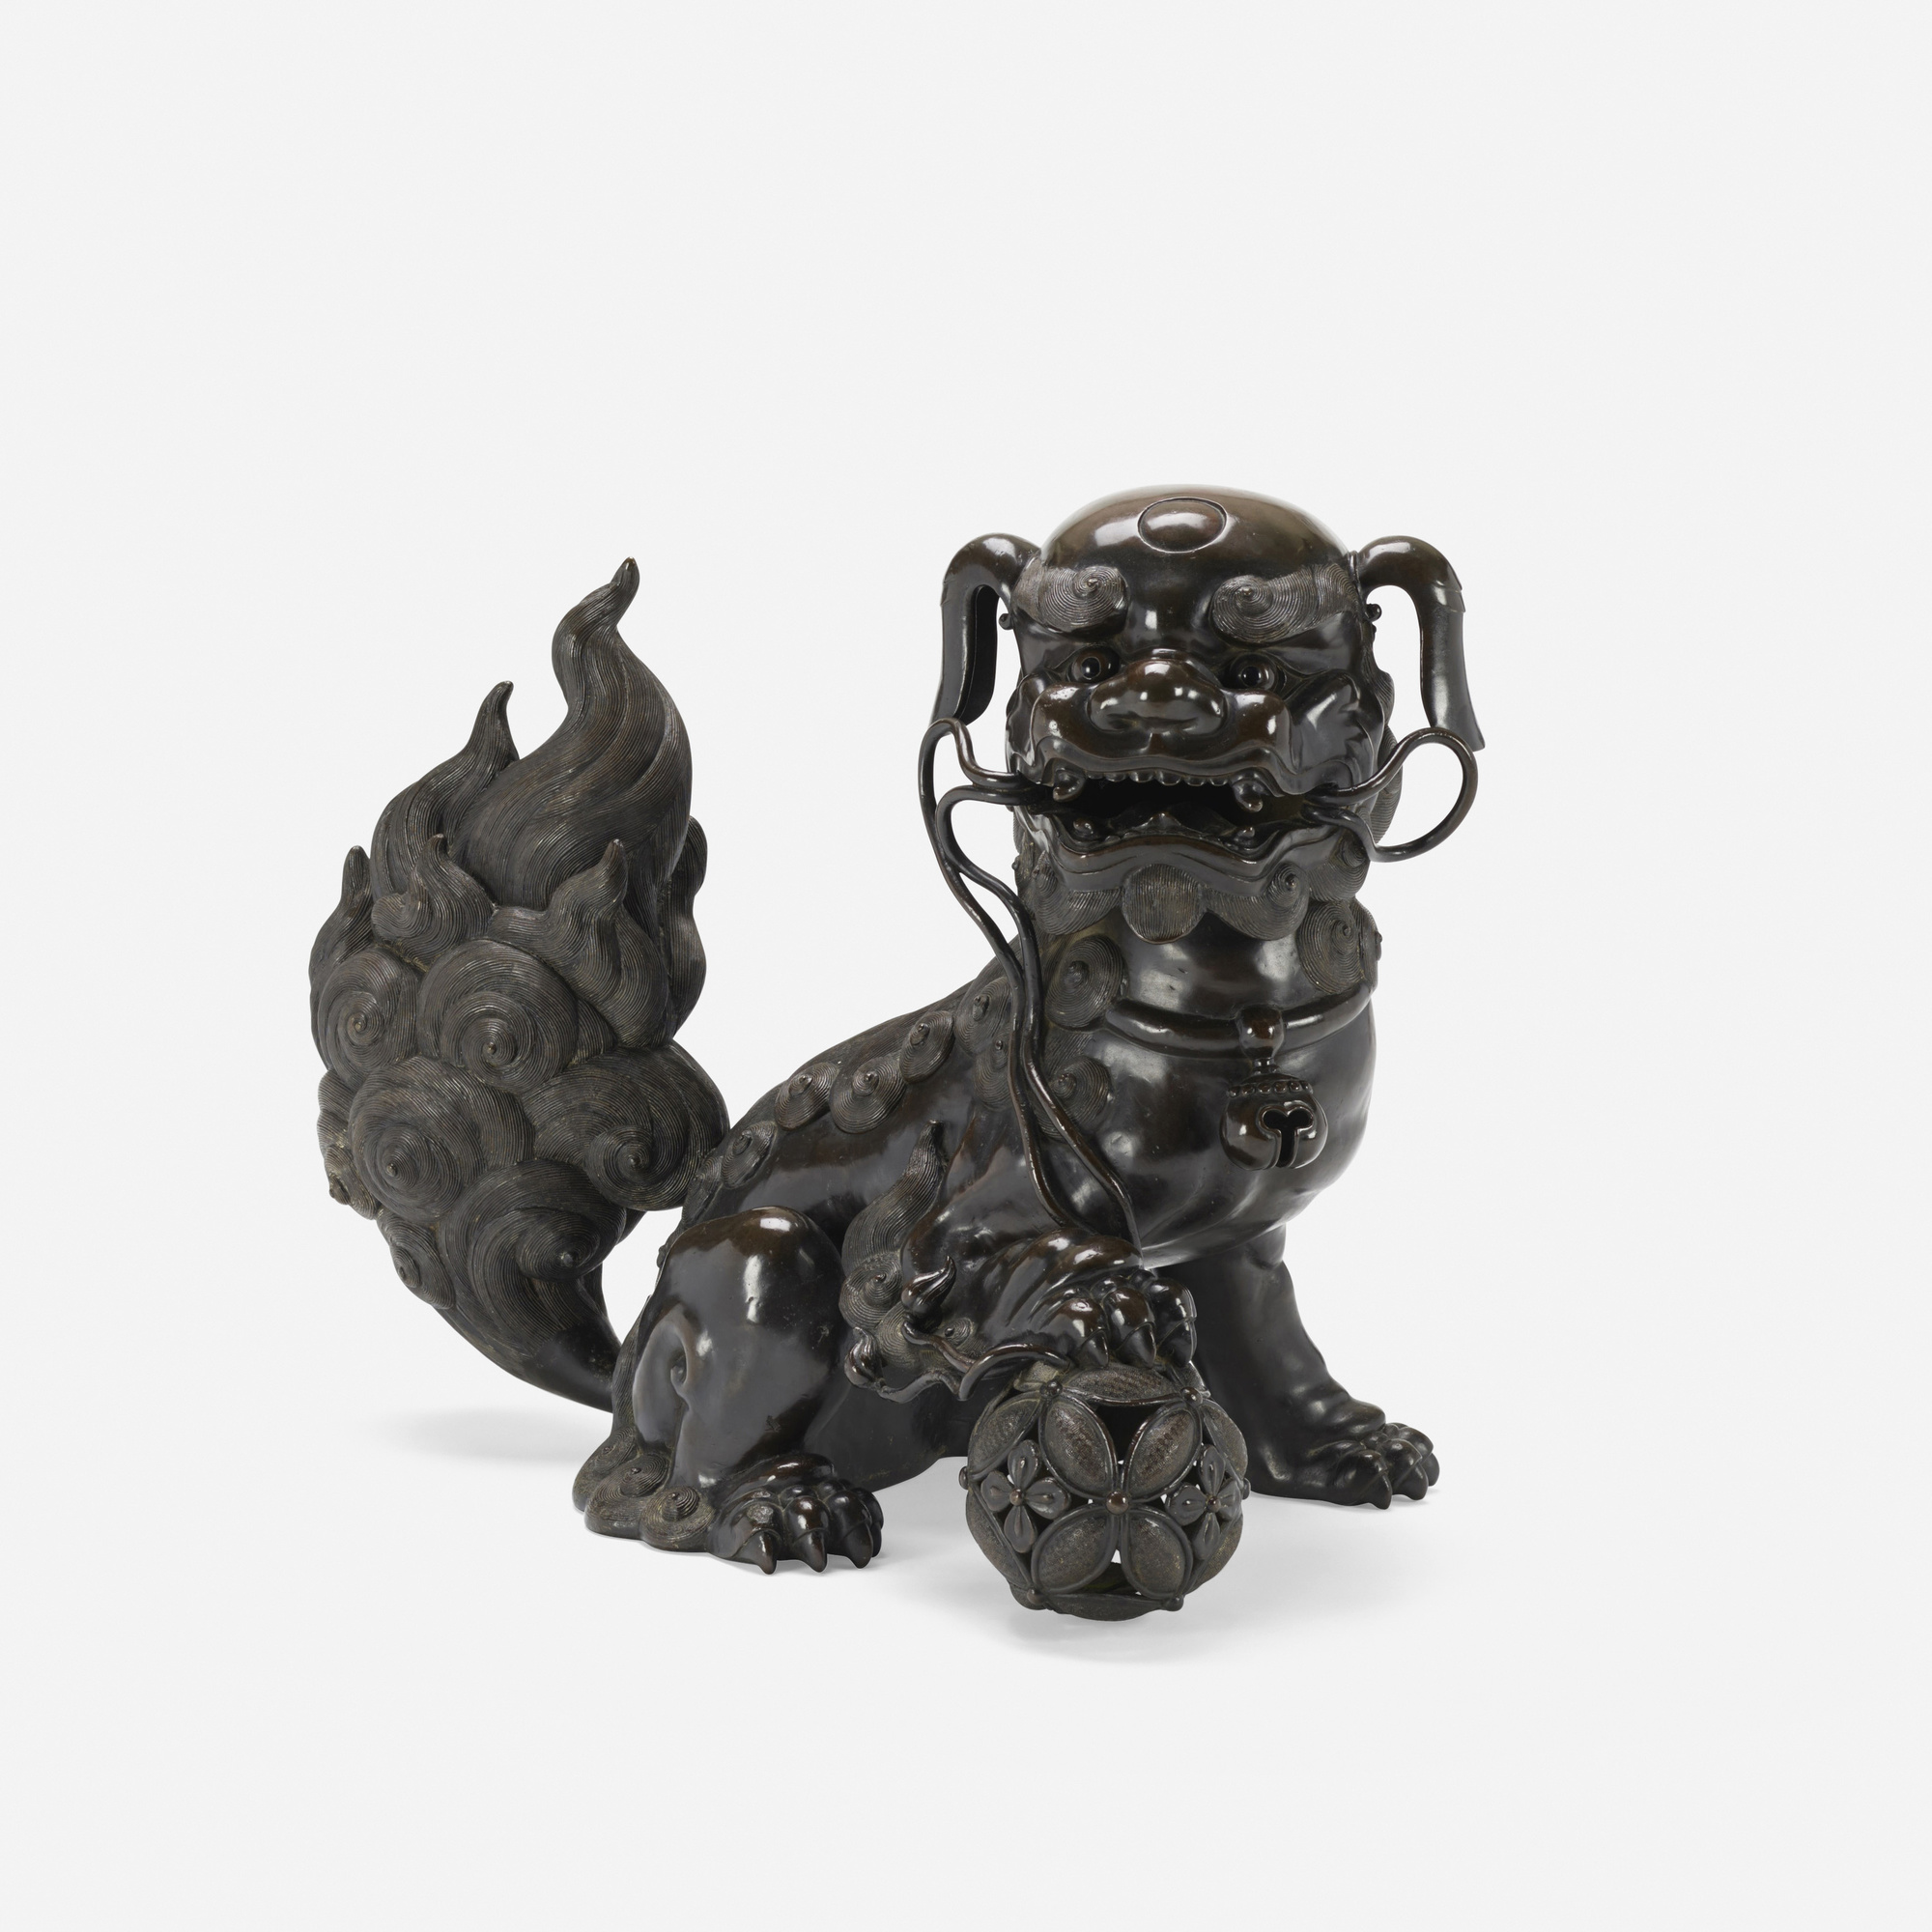 372: Chinese / Foo Dog incense burner (1 of 3)